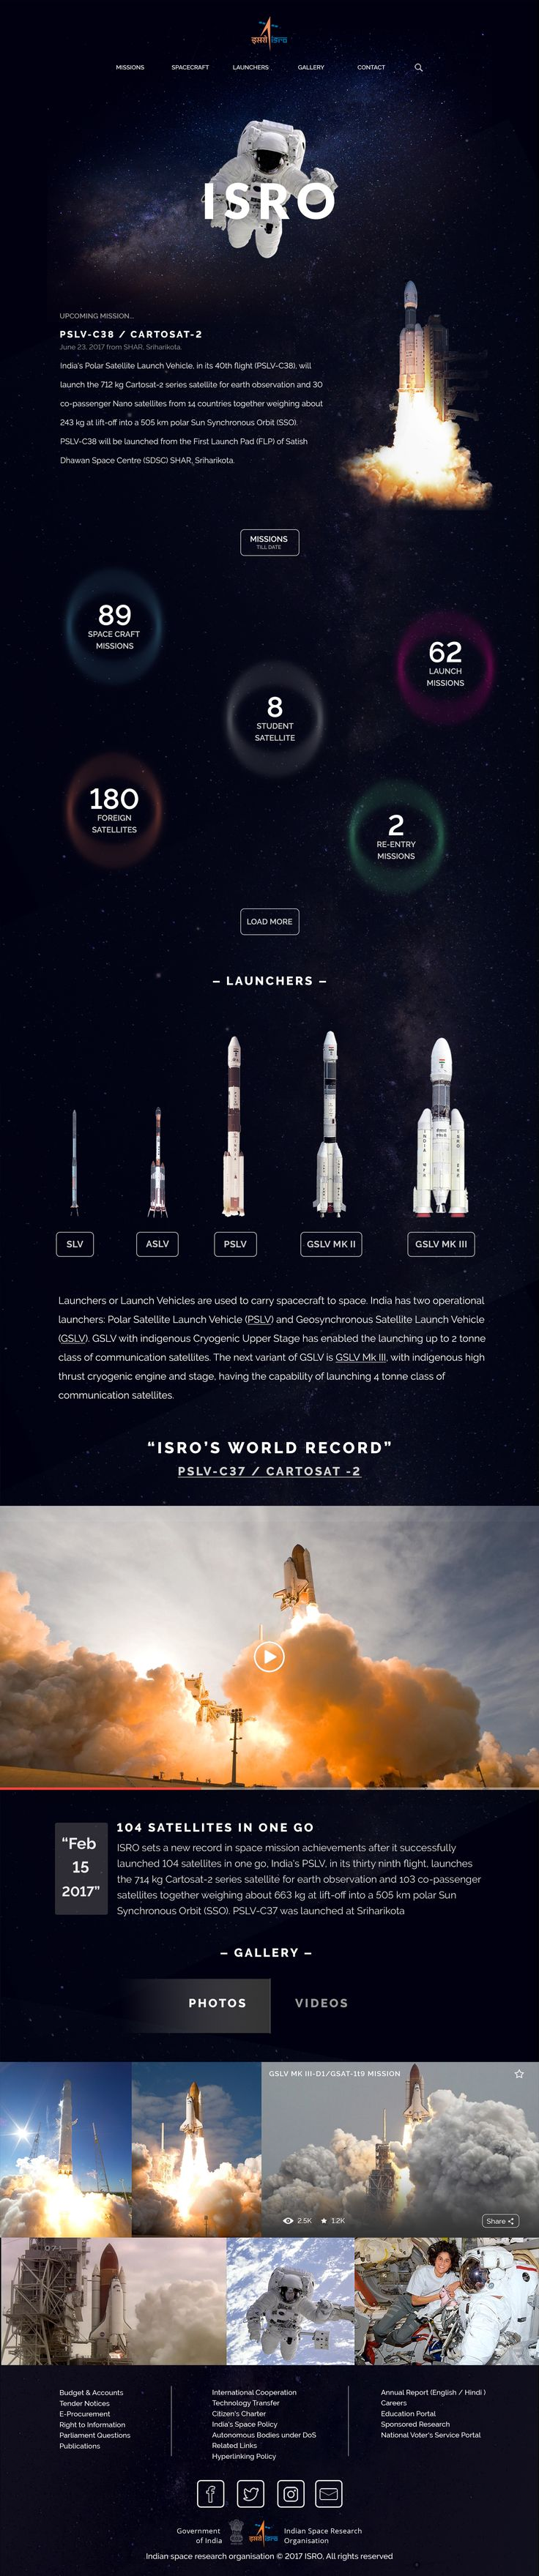 ISRO-Indian Space Research Organisation | Re-design